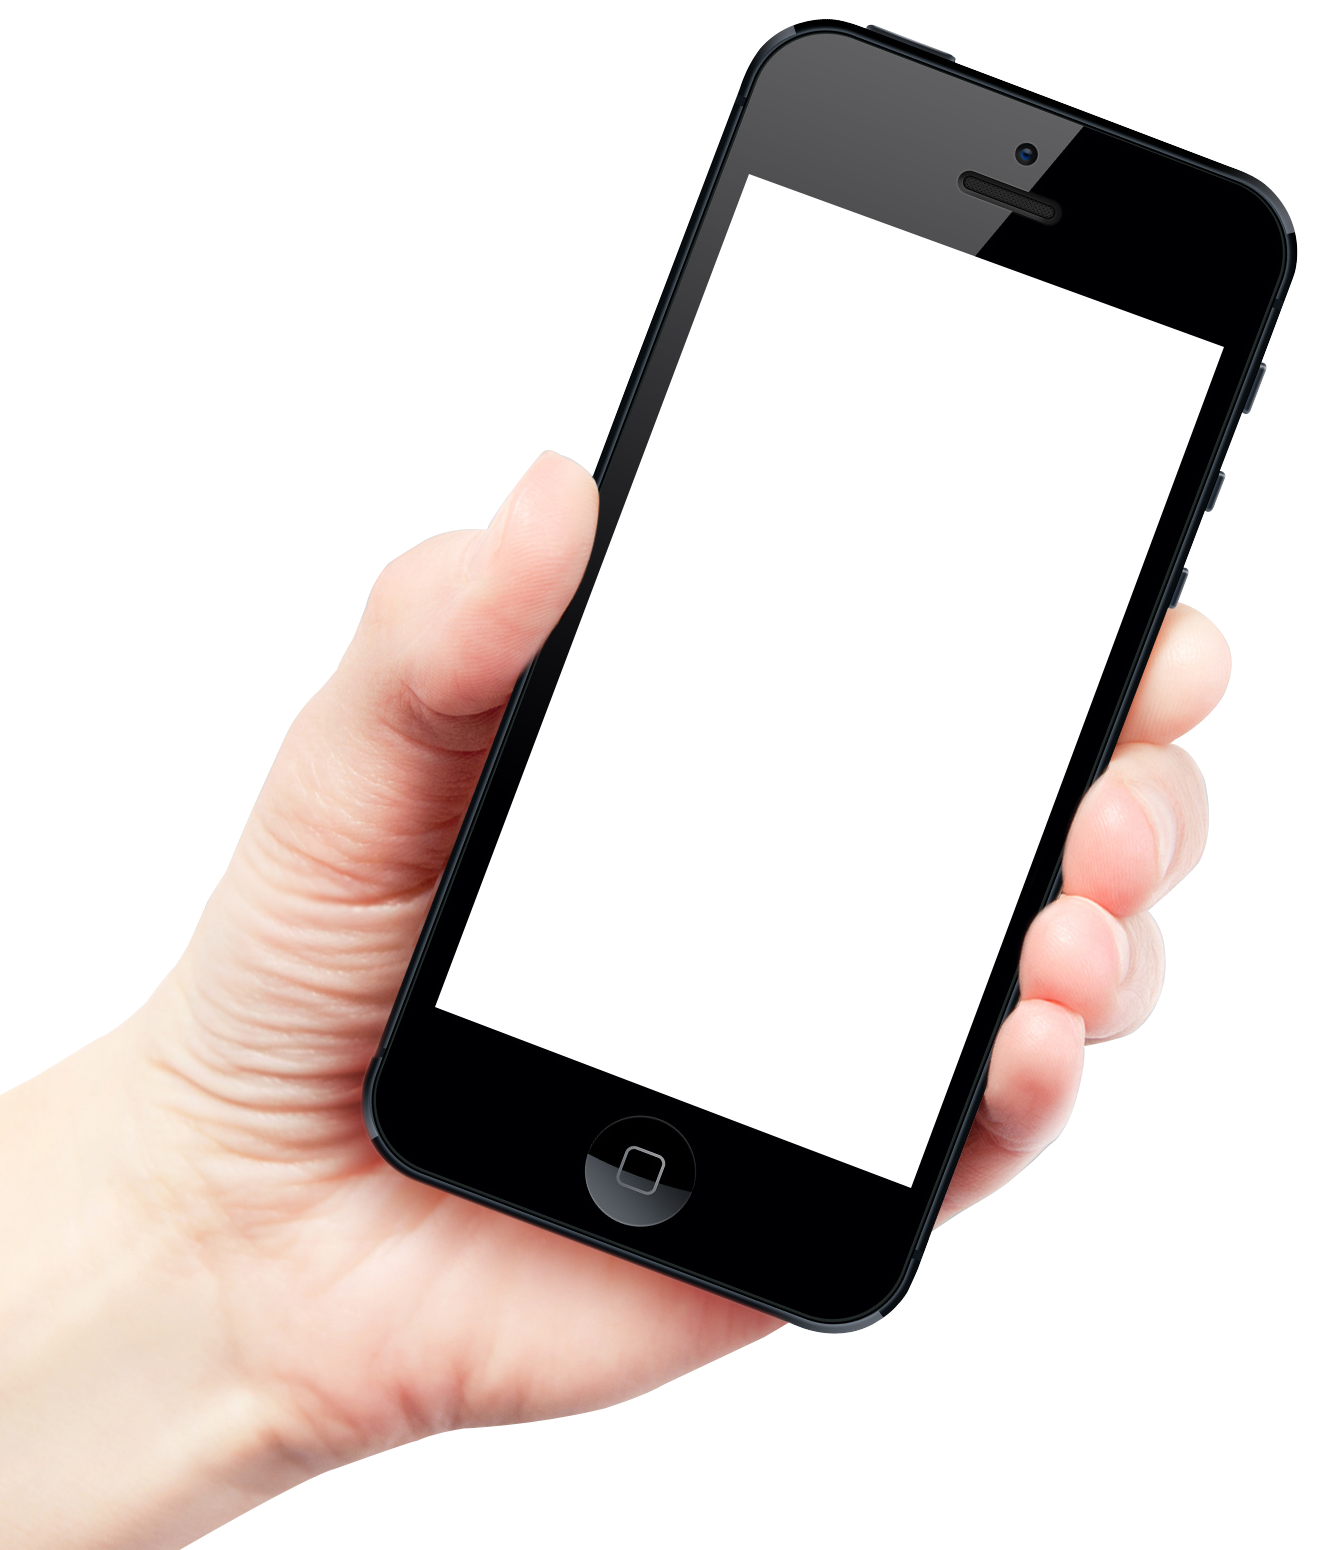 Hand cellphone png. Holding smartphone image purepng